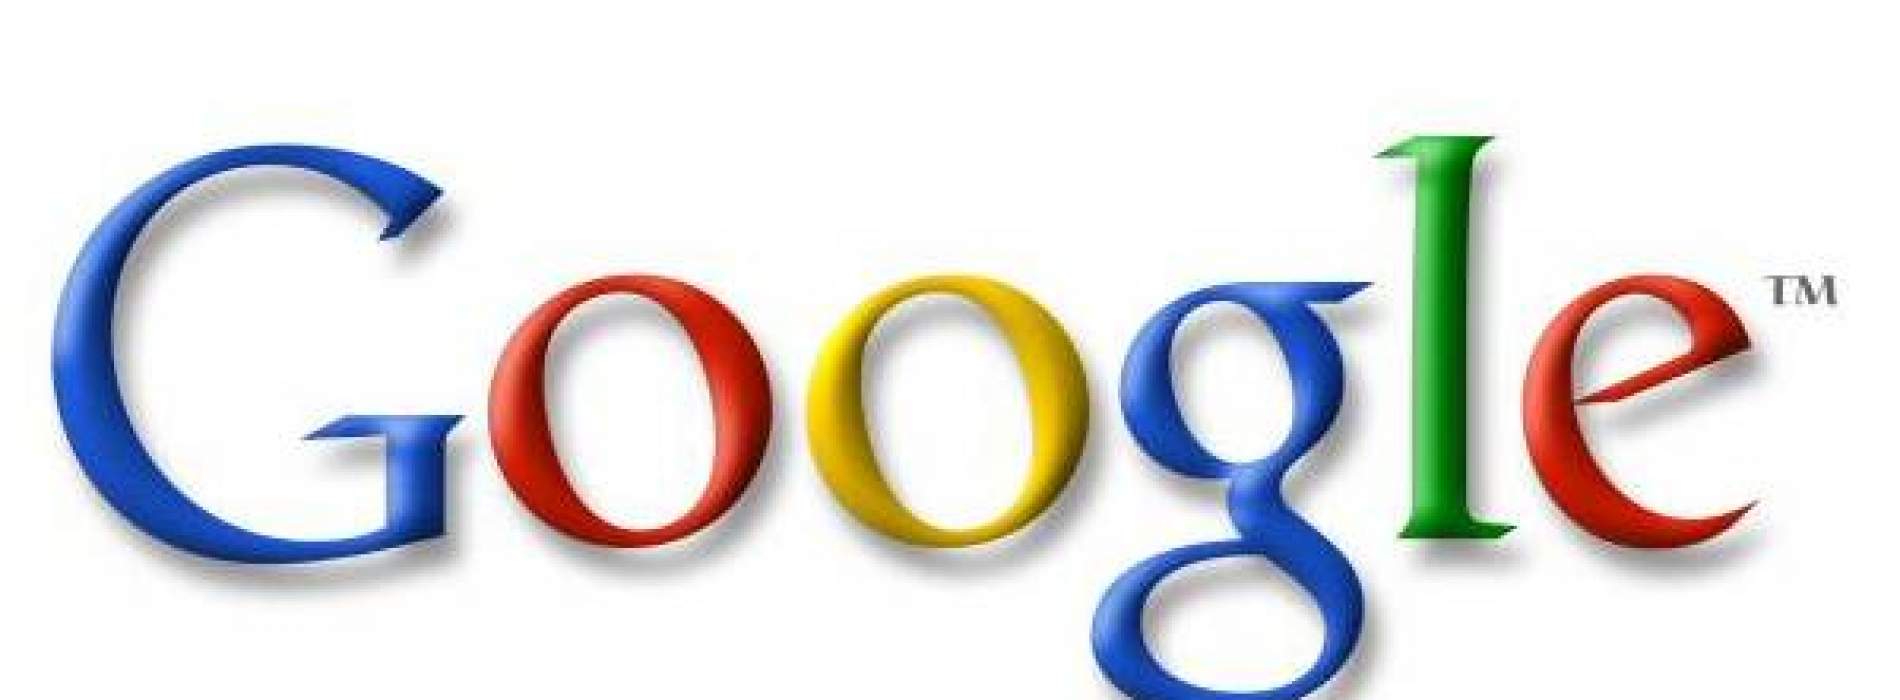 WSJ: Google getting into hardware business with entertainment device